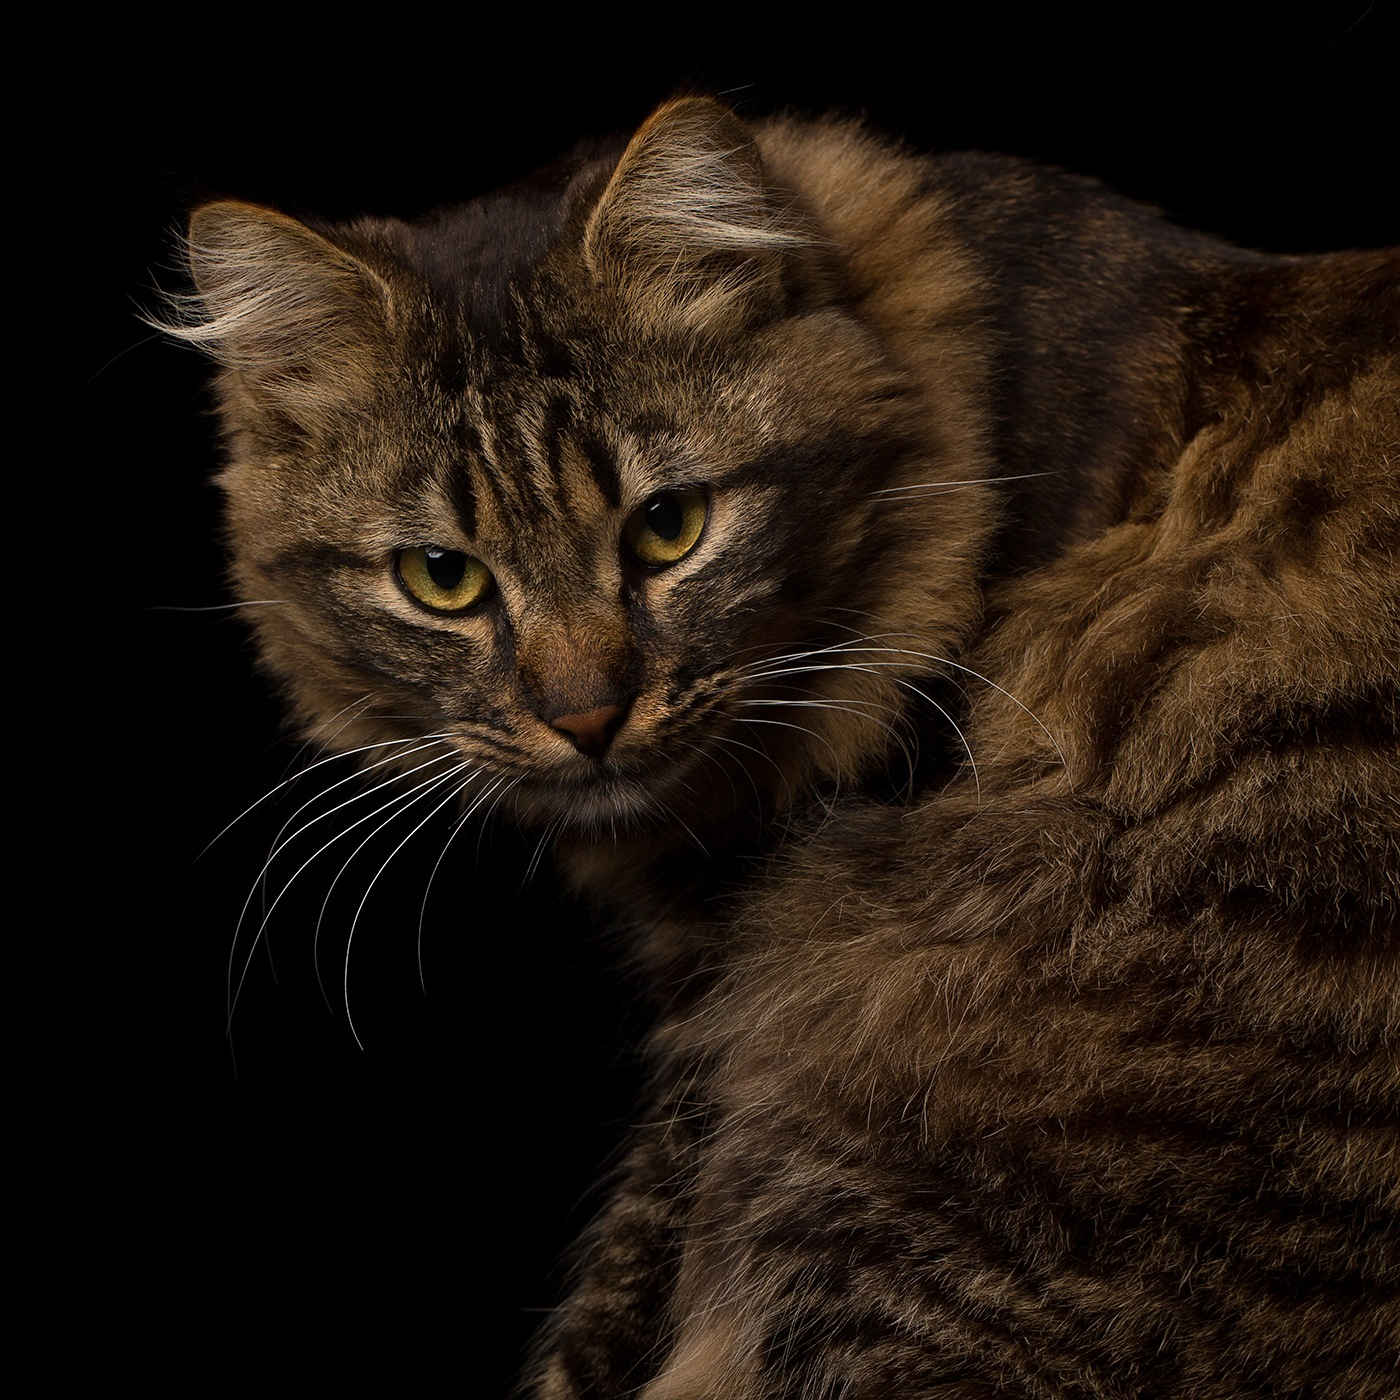 photographe-animaux-domestiques-chat-guillaume-heraud-06-small